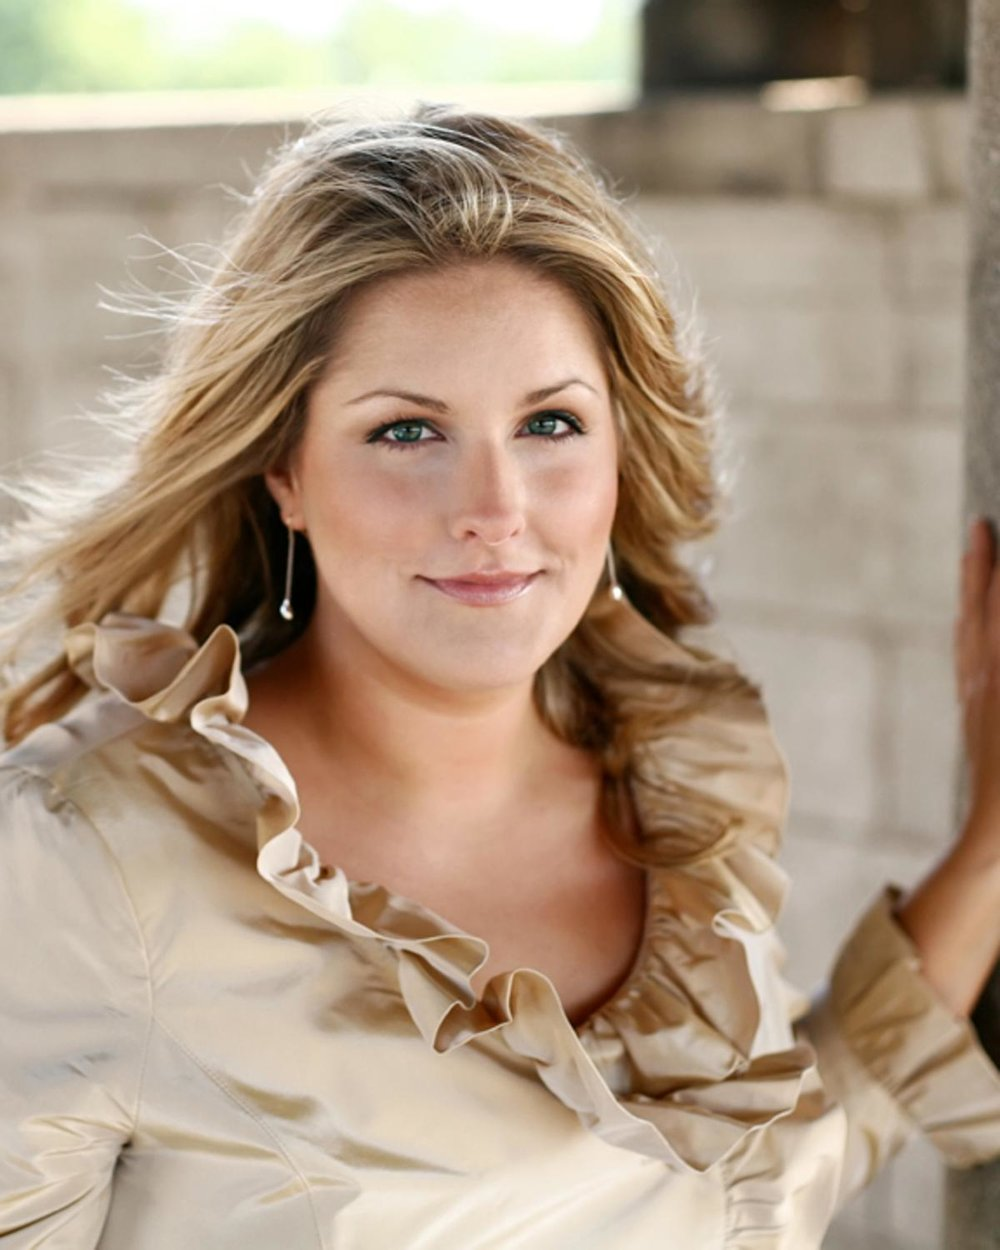 """Kathryn Leemhuis, mezzo-soprano - American mezzo-soprano Kathryn Leemhuis has performed with international opera companies such as the Lyric Opera of Chicago, Dallas Opera, Cincinnati Opera, Teatro Colón, Fort Worth Opera, Opera Theatre of St. Louis, Florentine Opera, Chicago Opera Theater, Ash Lawn Opera, and Annapolis Opera, among others. One of her most notable roles is Dorabella in Mozart's Cosi fan tutte, for which Kathryn has been hailed as """"ravishing,"""" adding that """"her sheer vocal beauty allied to nimbleness and an astonishing range of dynamic and coloristic nuance,"""" (Dallas Morning News). Her other prominent roles include Suzuki in Puccini's Madama Butterfly, Dido in Pucell's Dido and Aeneas, Zerlina in Mozart's Don Giovanni, the Mother in Menotti's Amahl and the Night Visitors, Paquette in Bernstein's Candide, Hänsel in Humperdinck's Hänsel und Gretel, Giulietta in Offenbach's Les contes d'Hoffmann, Amaltea in Rossini's Mosè in Egitto, and Florence Pike in Britten's Albert Herring.As a mezzo-soprano soloist on the concert stage, Kathryn has performed at Carnegie Hall, the Ravinia Festival, the Grant Park Music Festival, the Boise Philharmonic, with the Los Angeles Philharmonic at the Hollywood Bowl, and the Boston Symphony Orchestra at the Tanglewood Music Festival. She performed with Chicago's Music of the Baroque in both Haydn'sMissa in Angustiis and Mass in the Time of War, with the Apollo Chorus of Chicago in Händel's Messiah, and with Gloriae Dei Cantores in Mozart's Requiem and Vaughan Williams' The Pilgrim's Progress. She has also performed multiple times with the Richmond Symphony, presenting Berlioz's Les nuits d'été, Berlioz's Roméo et Juliette, and Mendelssohn's Die erste Walpurgisnacht. Kathryn's performance of Les nuits d'été was graciously embraced: """"Her dark lower register tones seemed to fill the considerable space of the Carpenter Theatre and impose a profound quiet on both the accompanying musicians and the audience. It was a remarkable di"""